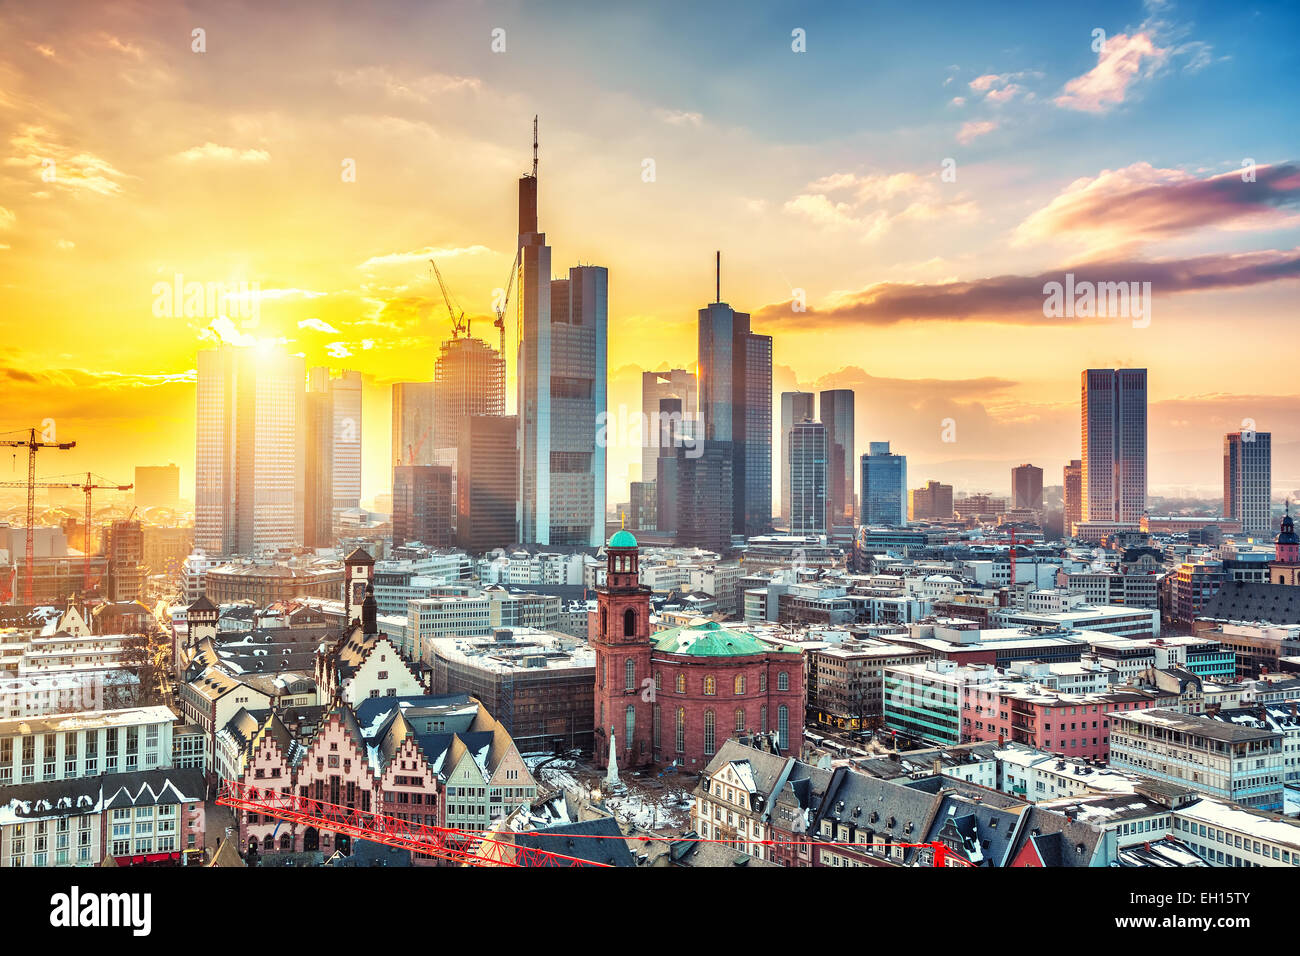 Frankfurt at sunset - Stock Image